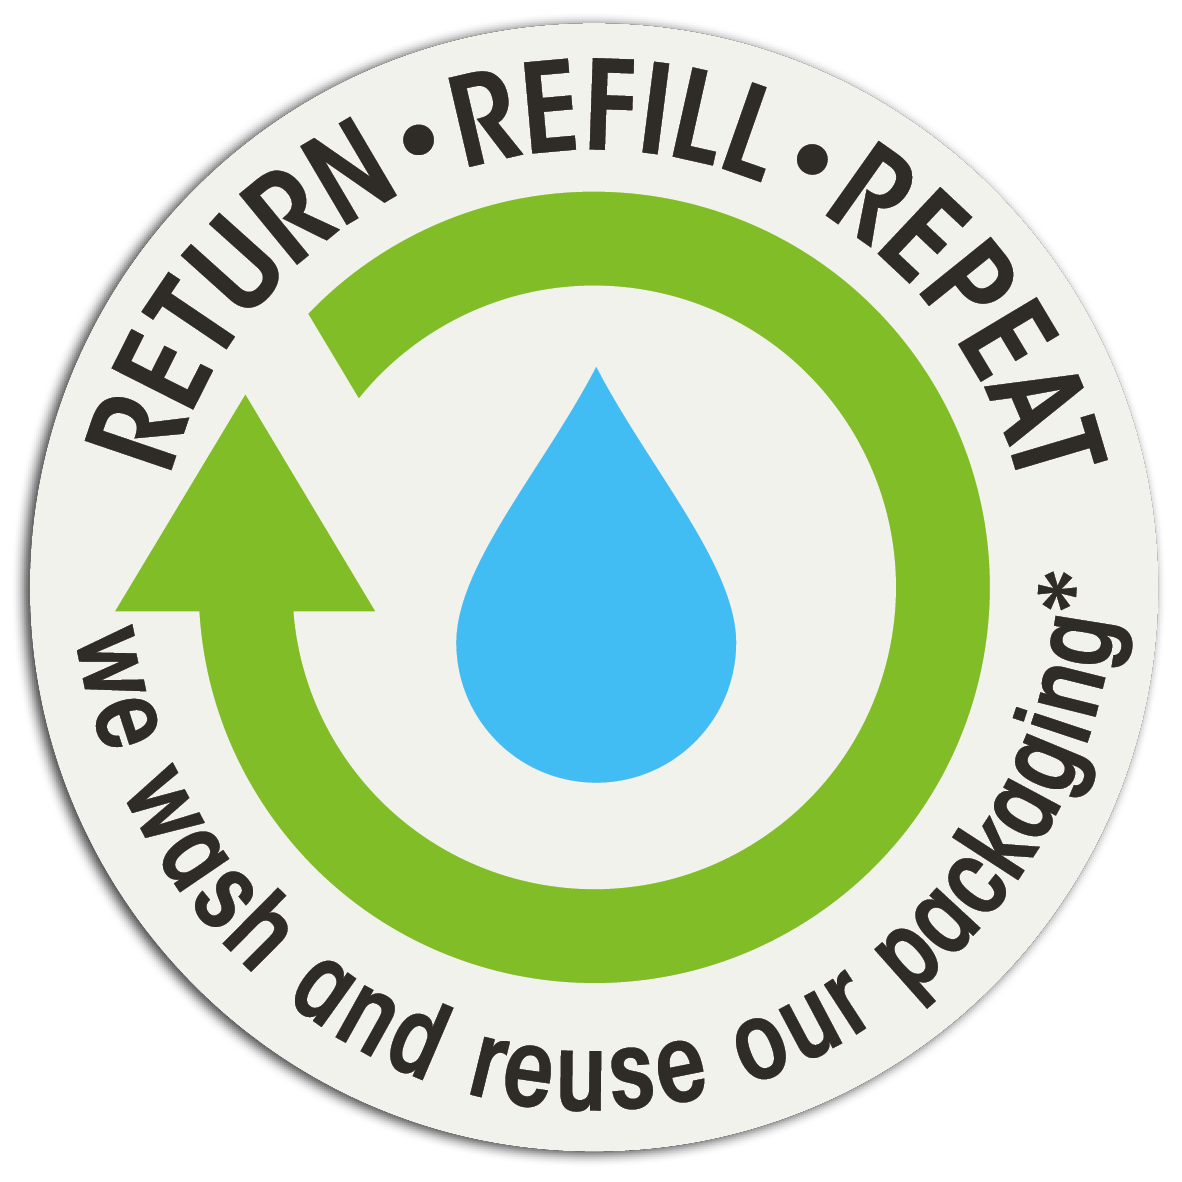 Join the reuse revolution